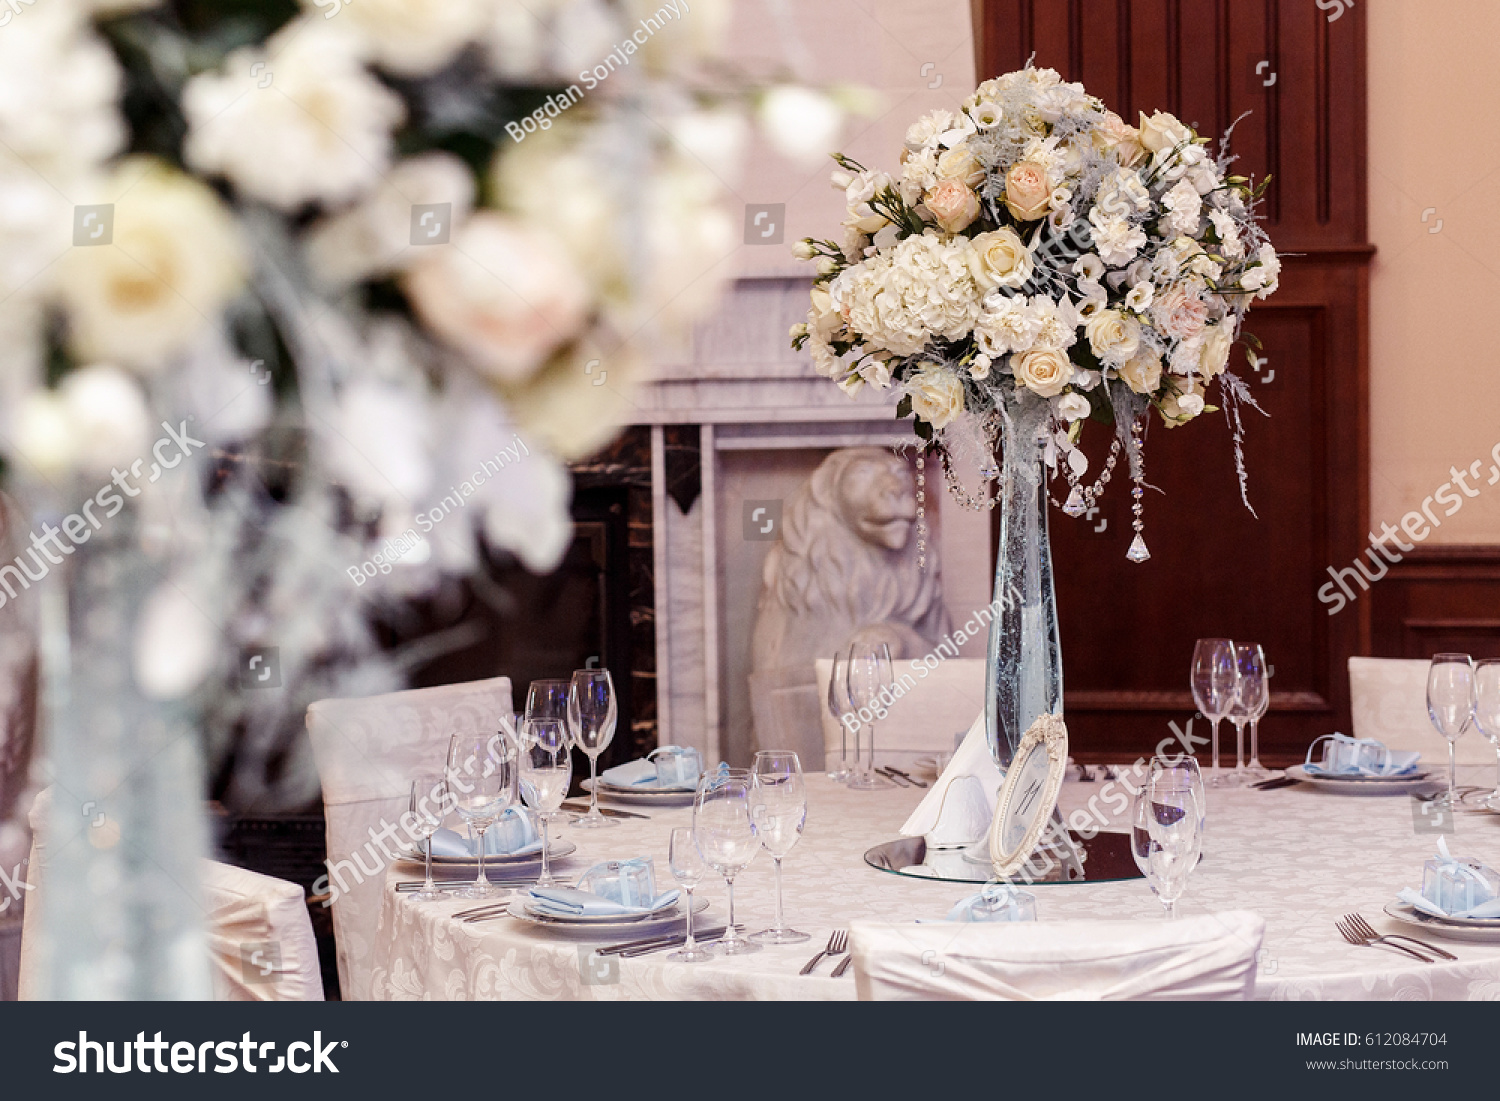 Luxury Decorated Tables At Rich Wedding Reception. Stylish Arrangements Of  Flowers And Jewels On Table